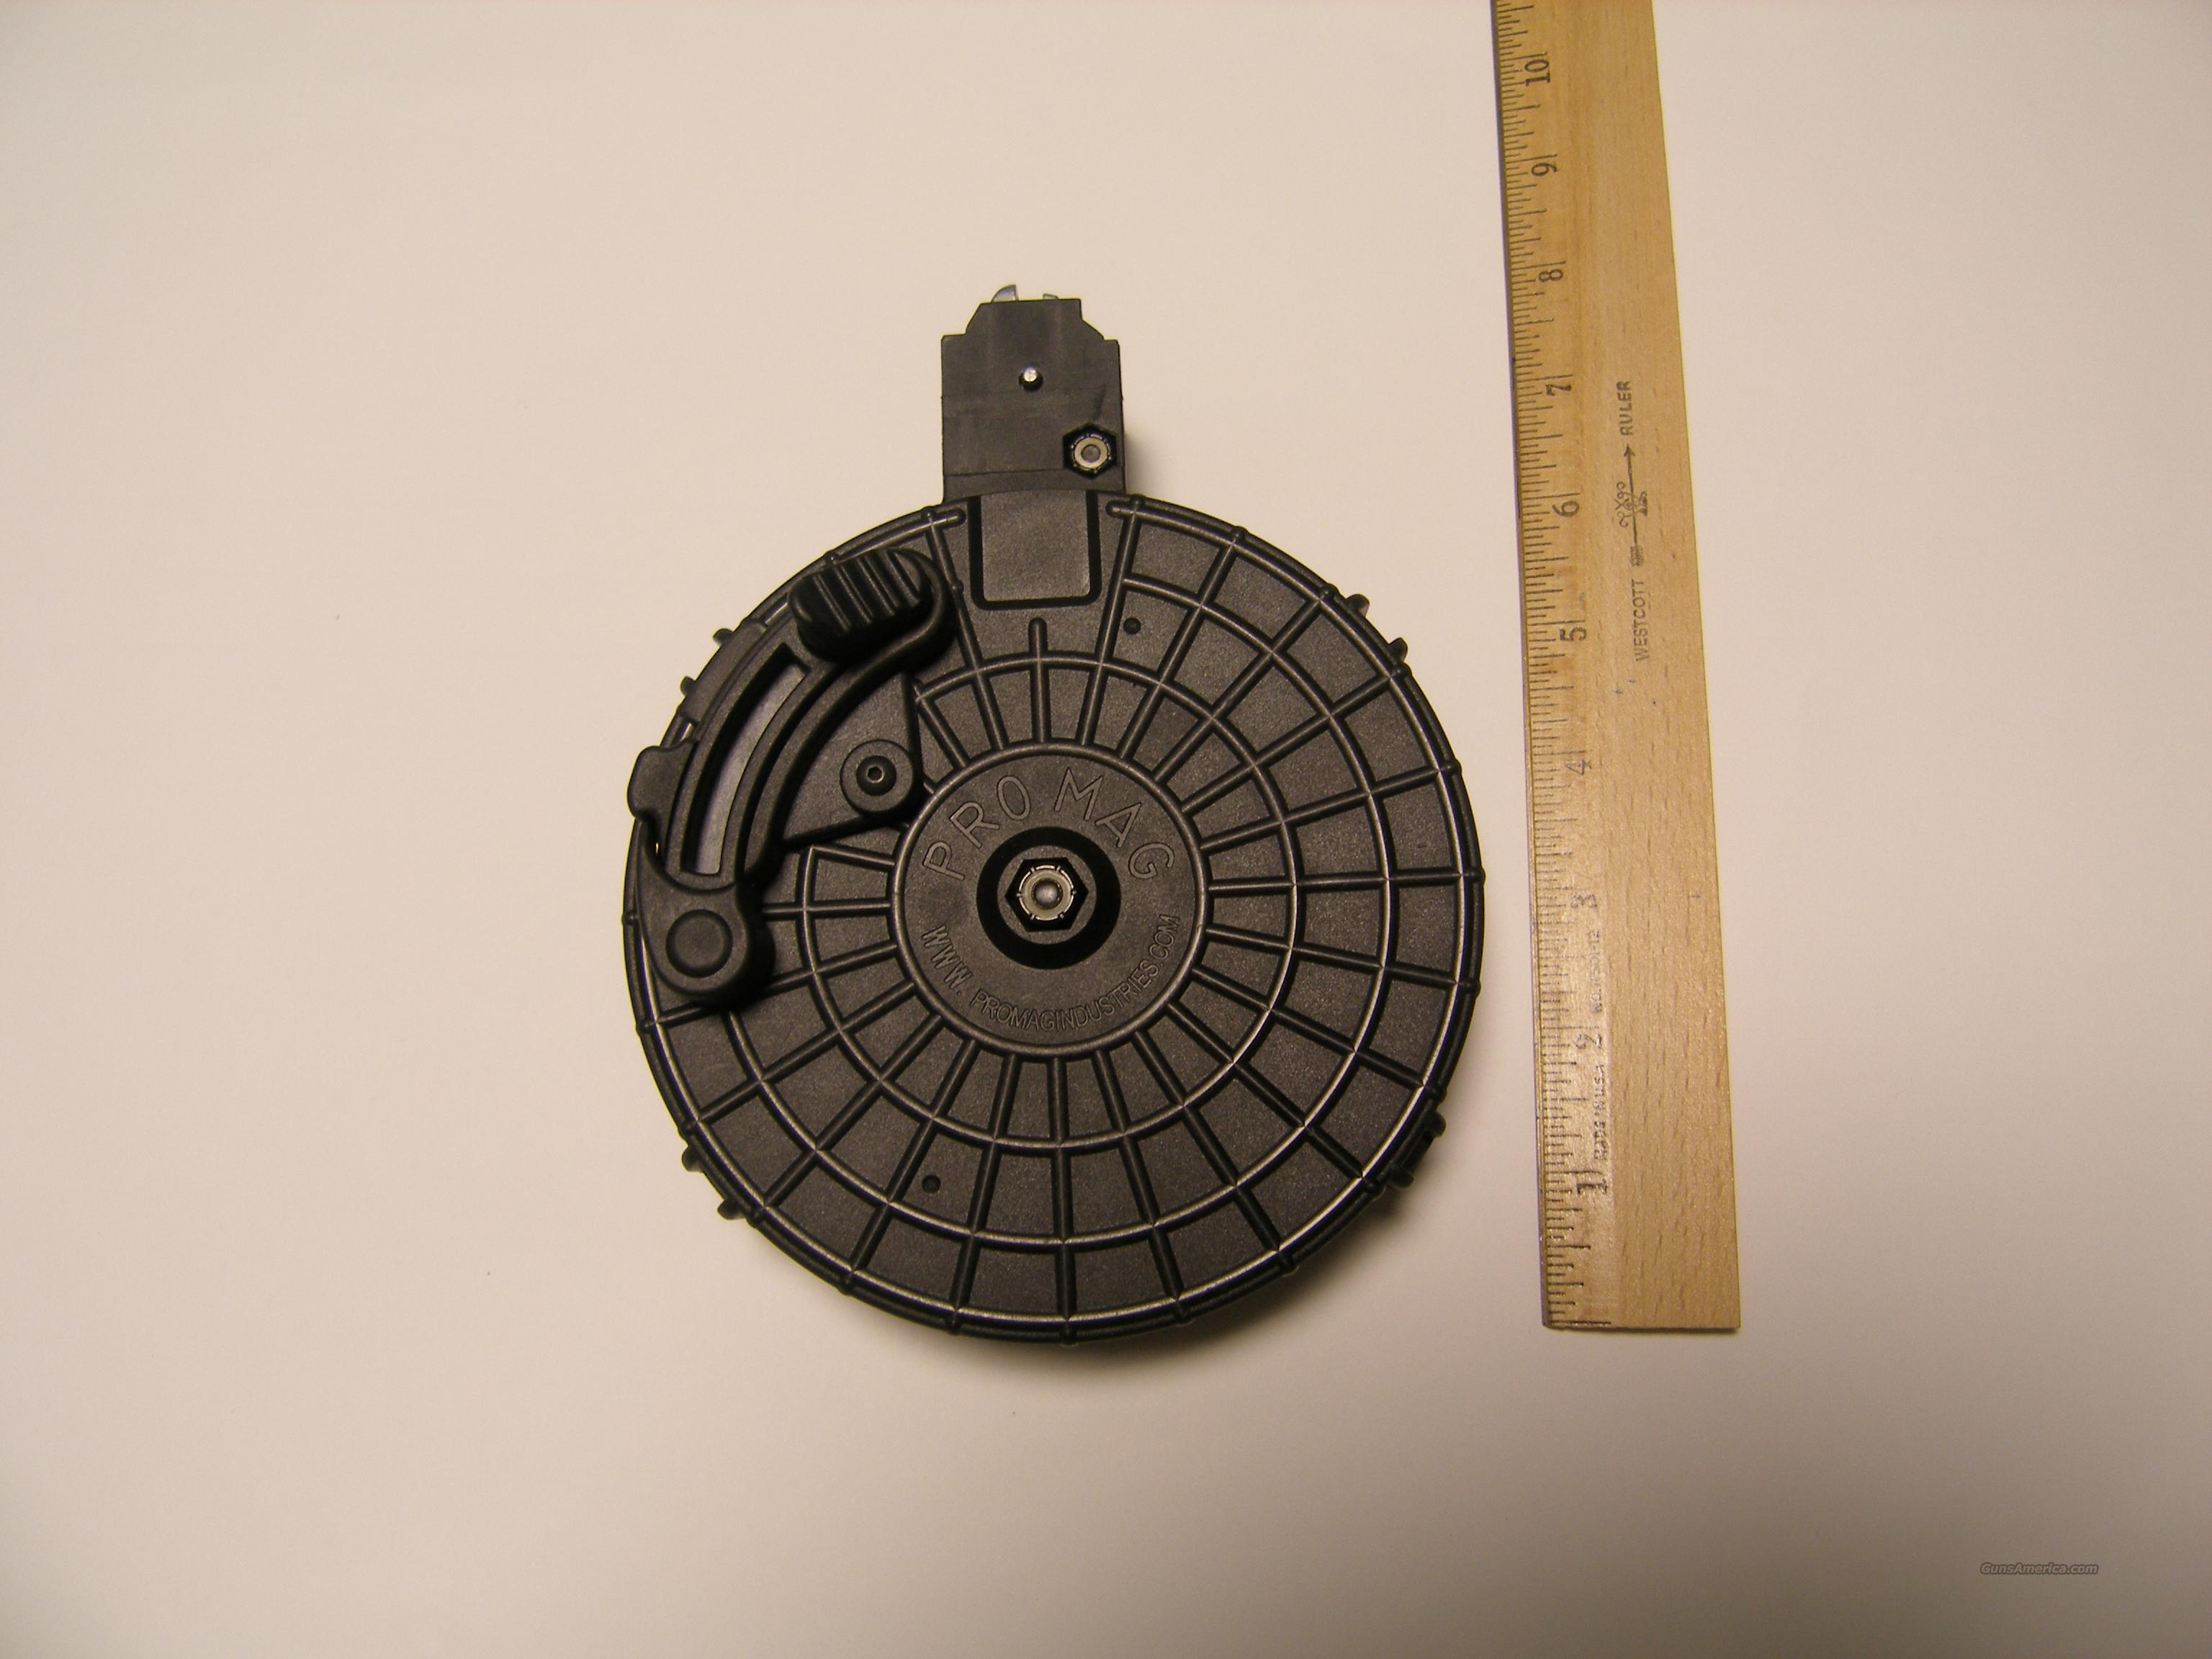 Ruger 10/22 50 Round Drum Magazine, Promag, Black, New  Non-Guns > Magazines & Clips > Rifle Magazines > 10/22